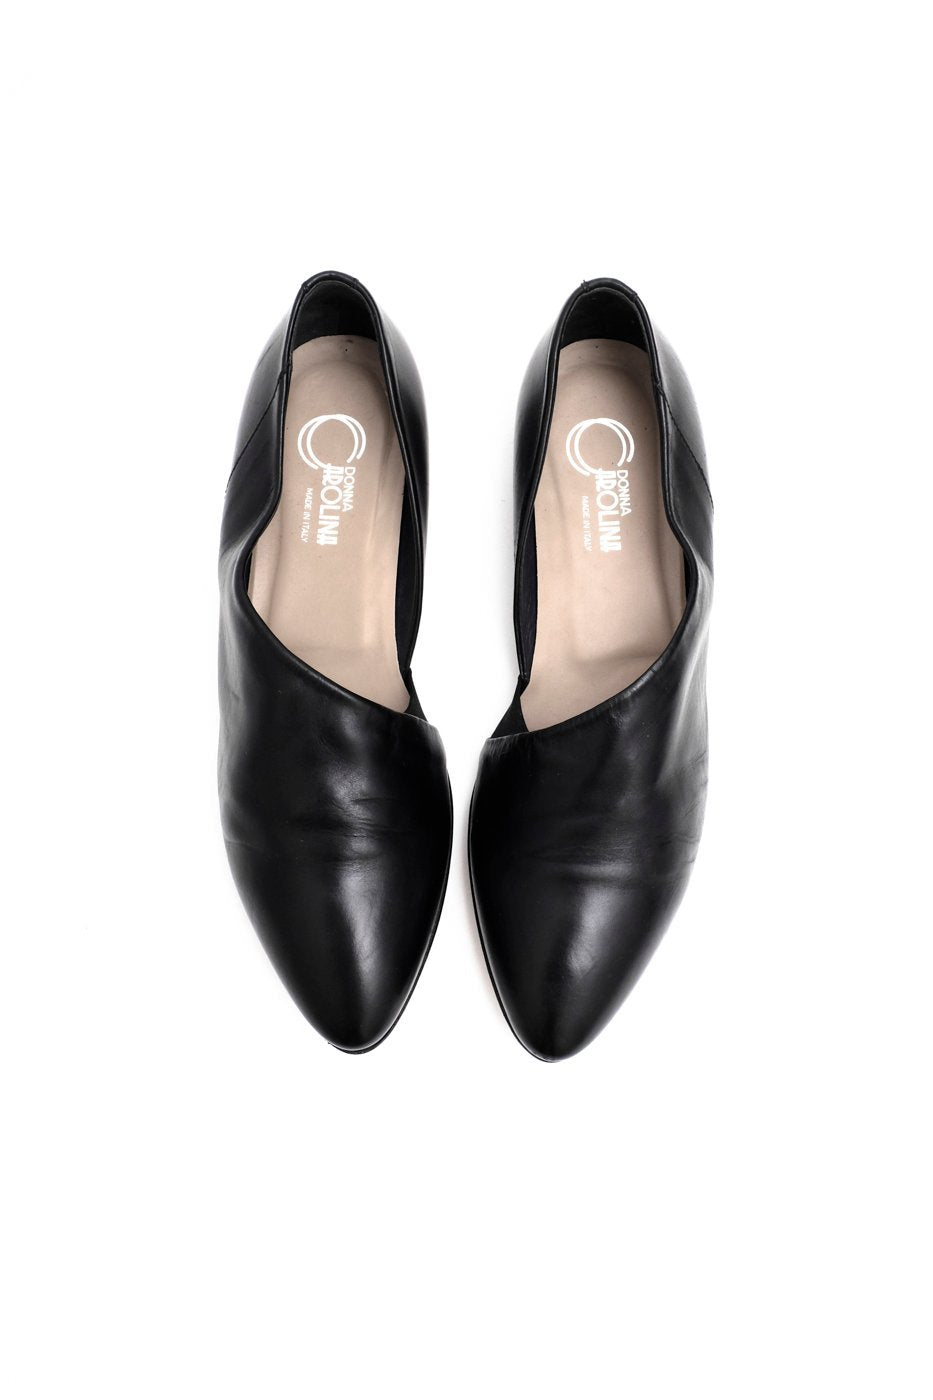 0488_PURISTIC BLACK 38,5 LEATHER SHOES